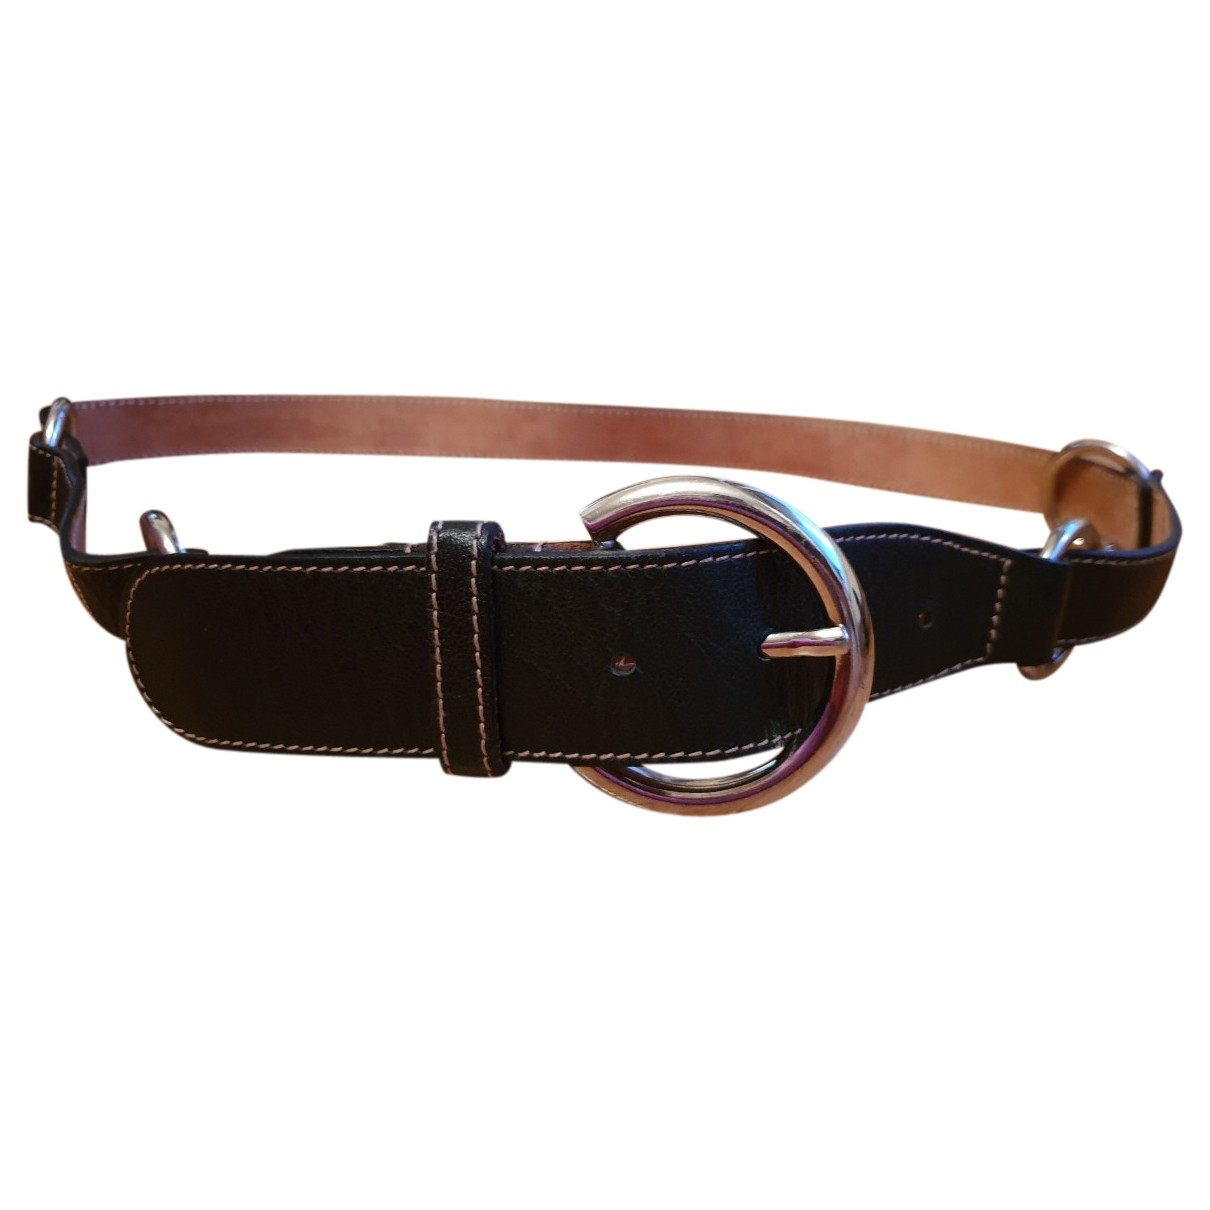 Furla \N Black Leather belt for Women S International